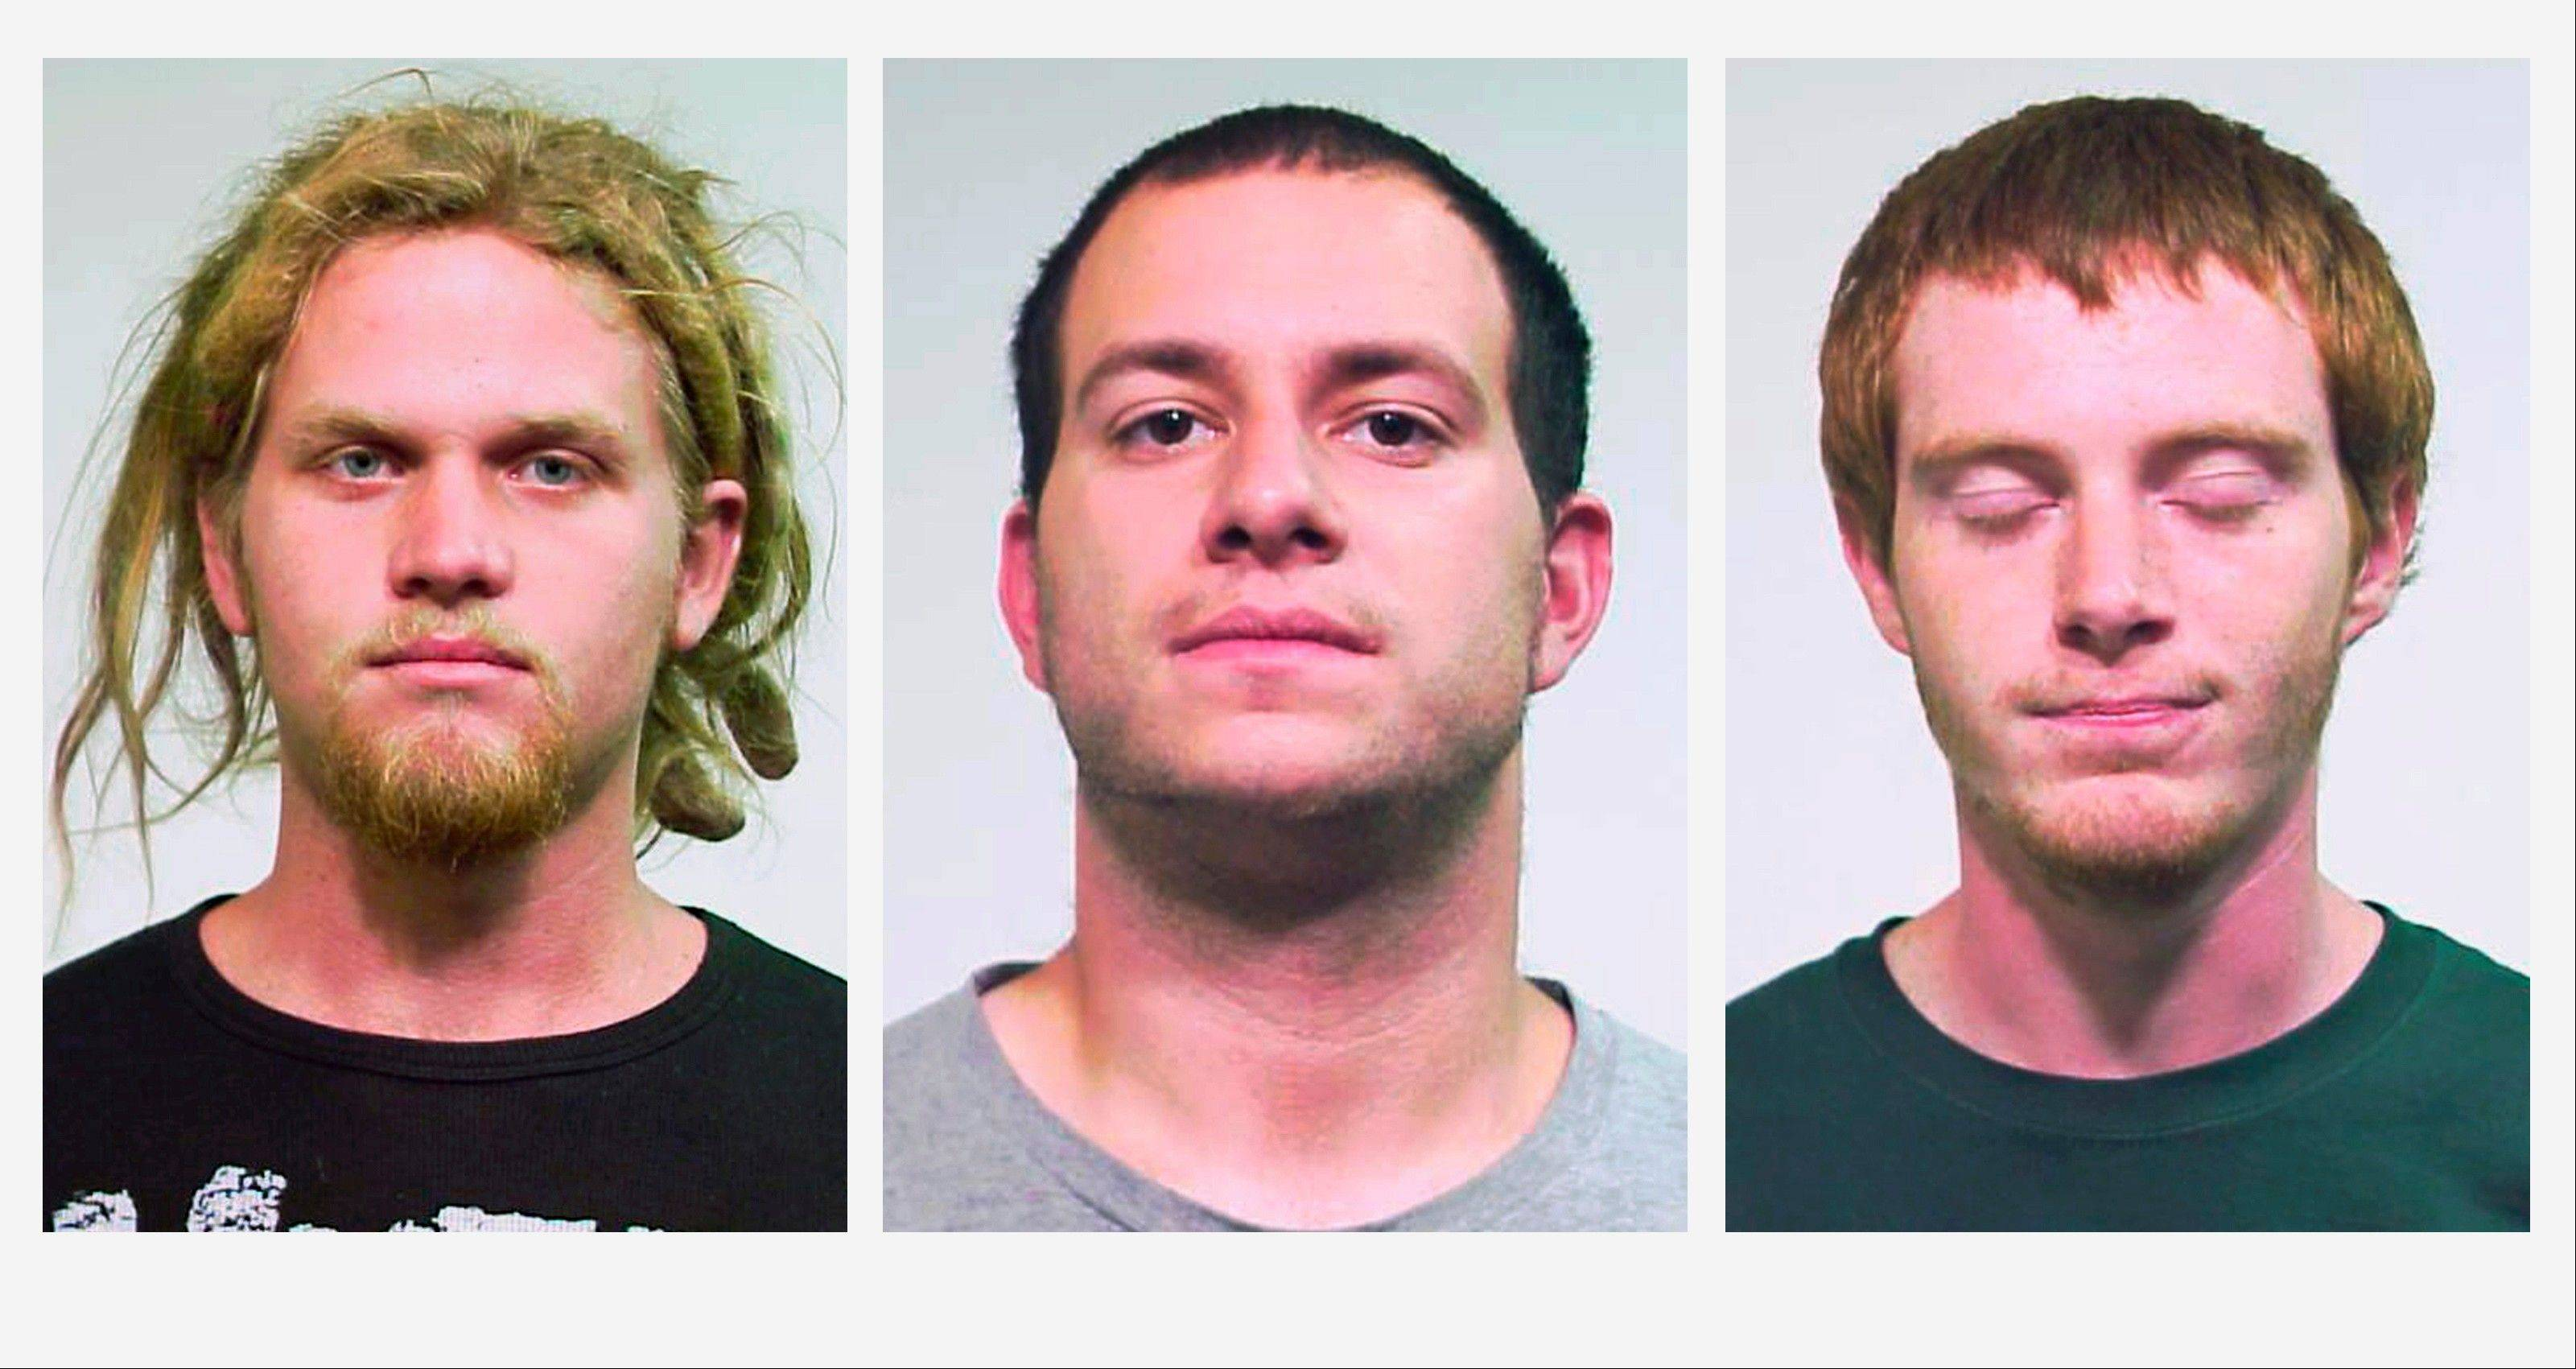 Brent Vincent Betterly, 24, of Oakland Park, Fla., Jared Chase, 24, of Keene, N.H., and Brian Church, 20, of Fort Lauderdale, Fla., are accused of plotting Molotov cocktail attacks during last year�s NATO summit in Chicago.